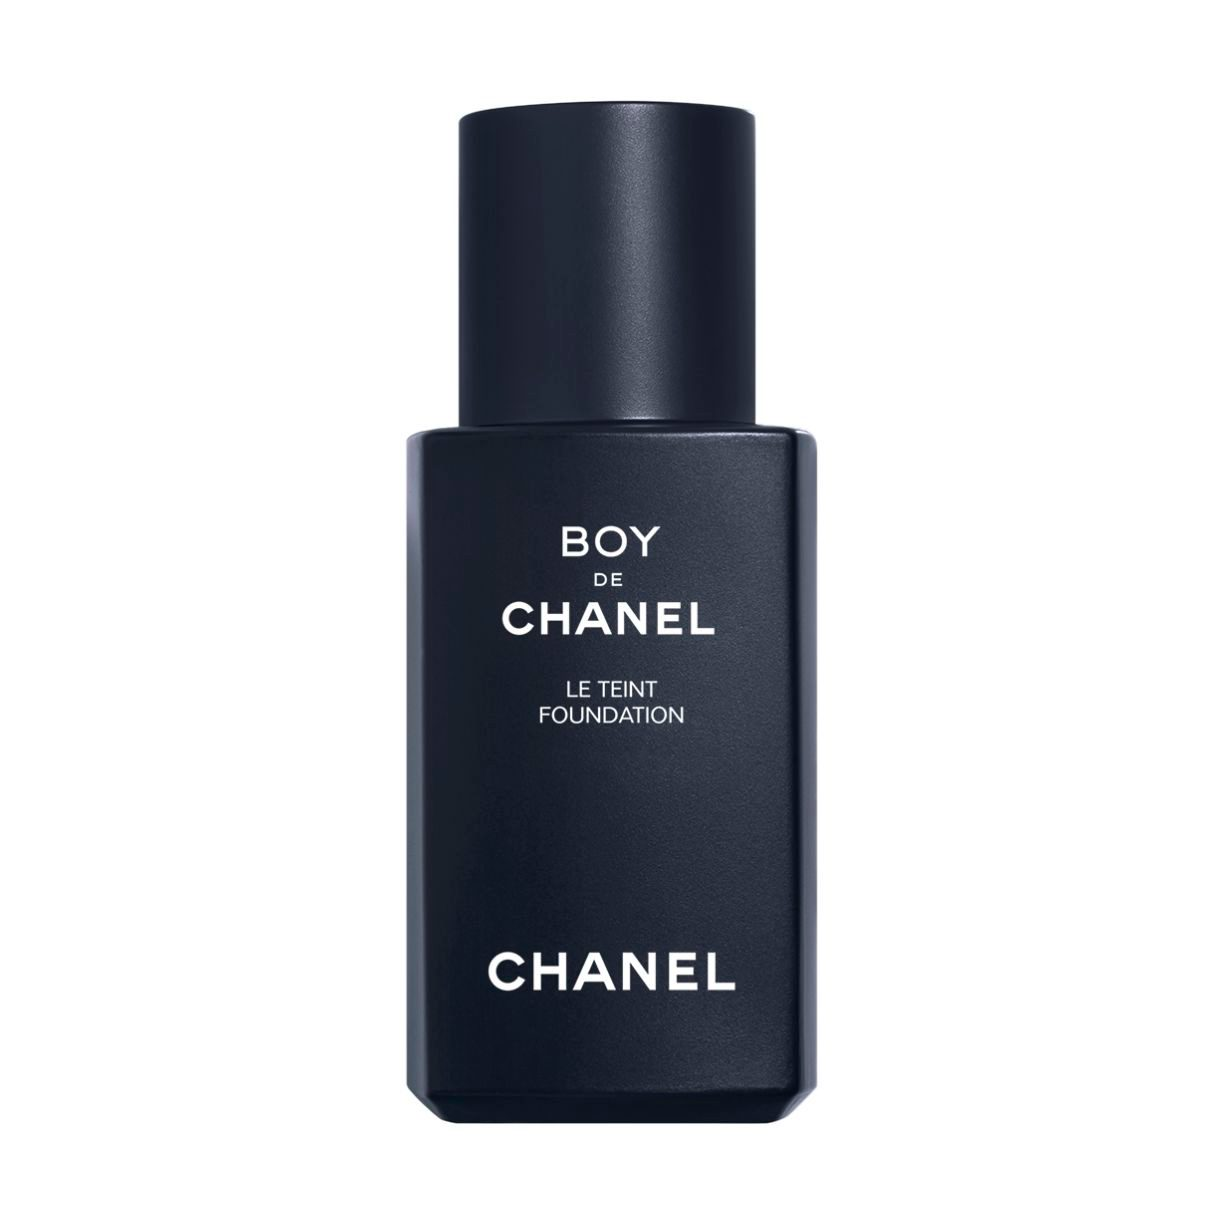 BOY DE CHANEL FOUNDATION SUBTLE AND LONGWEARING COMPLEXION ENHANCER